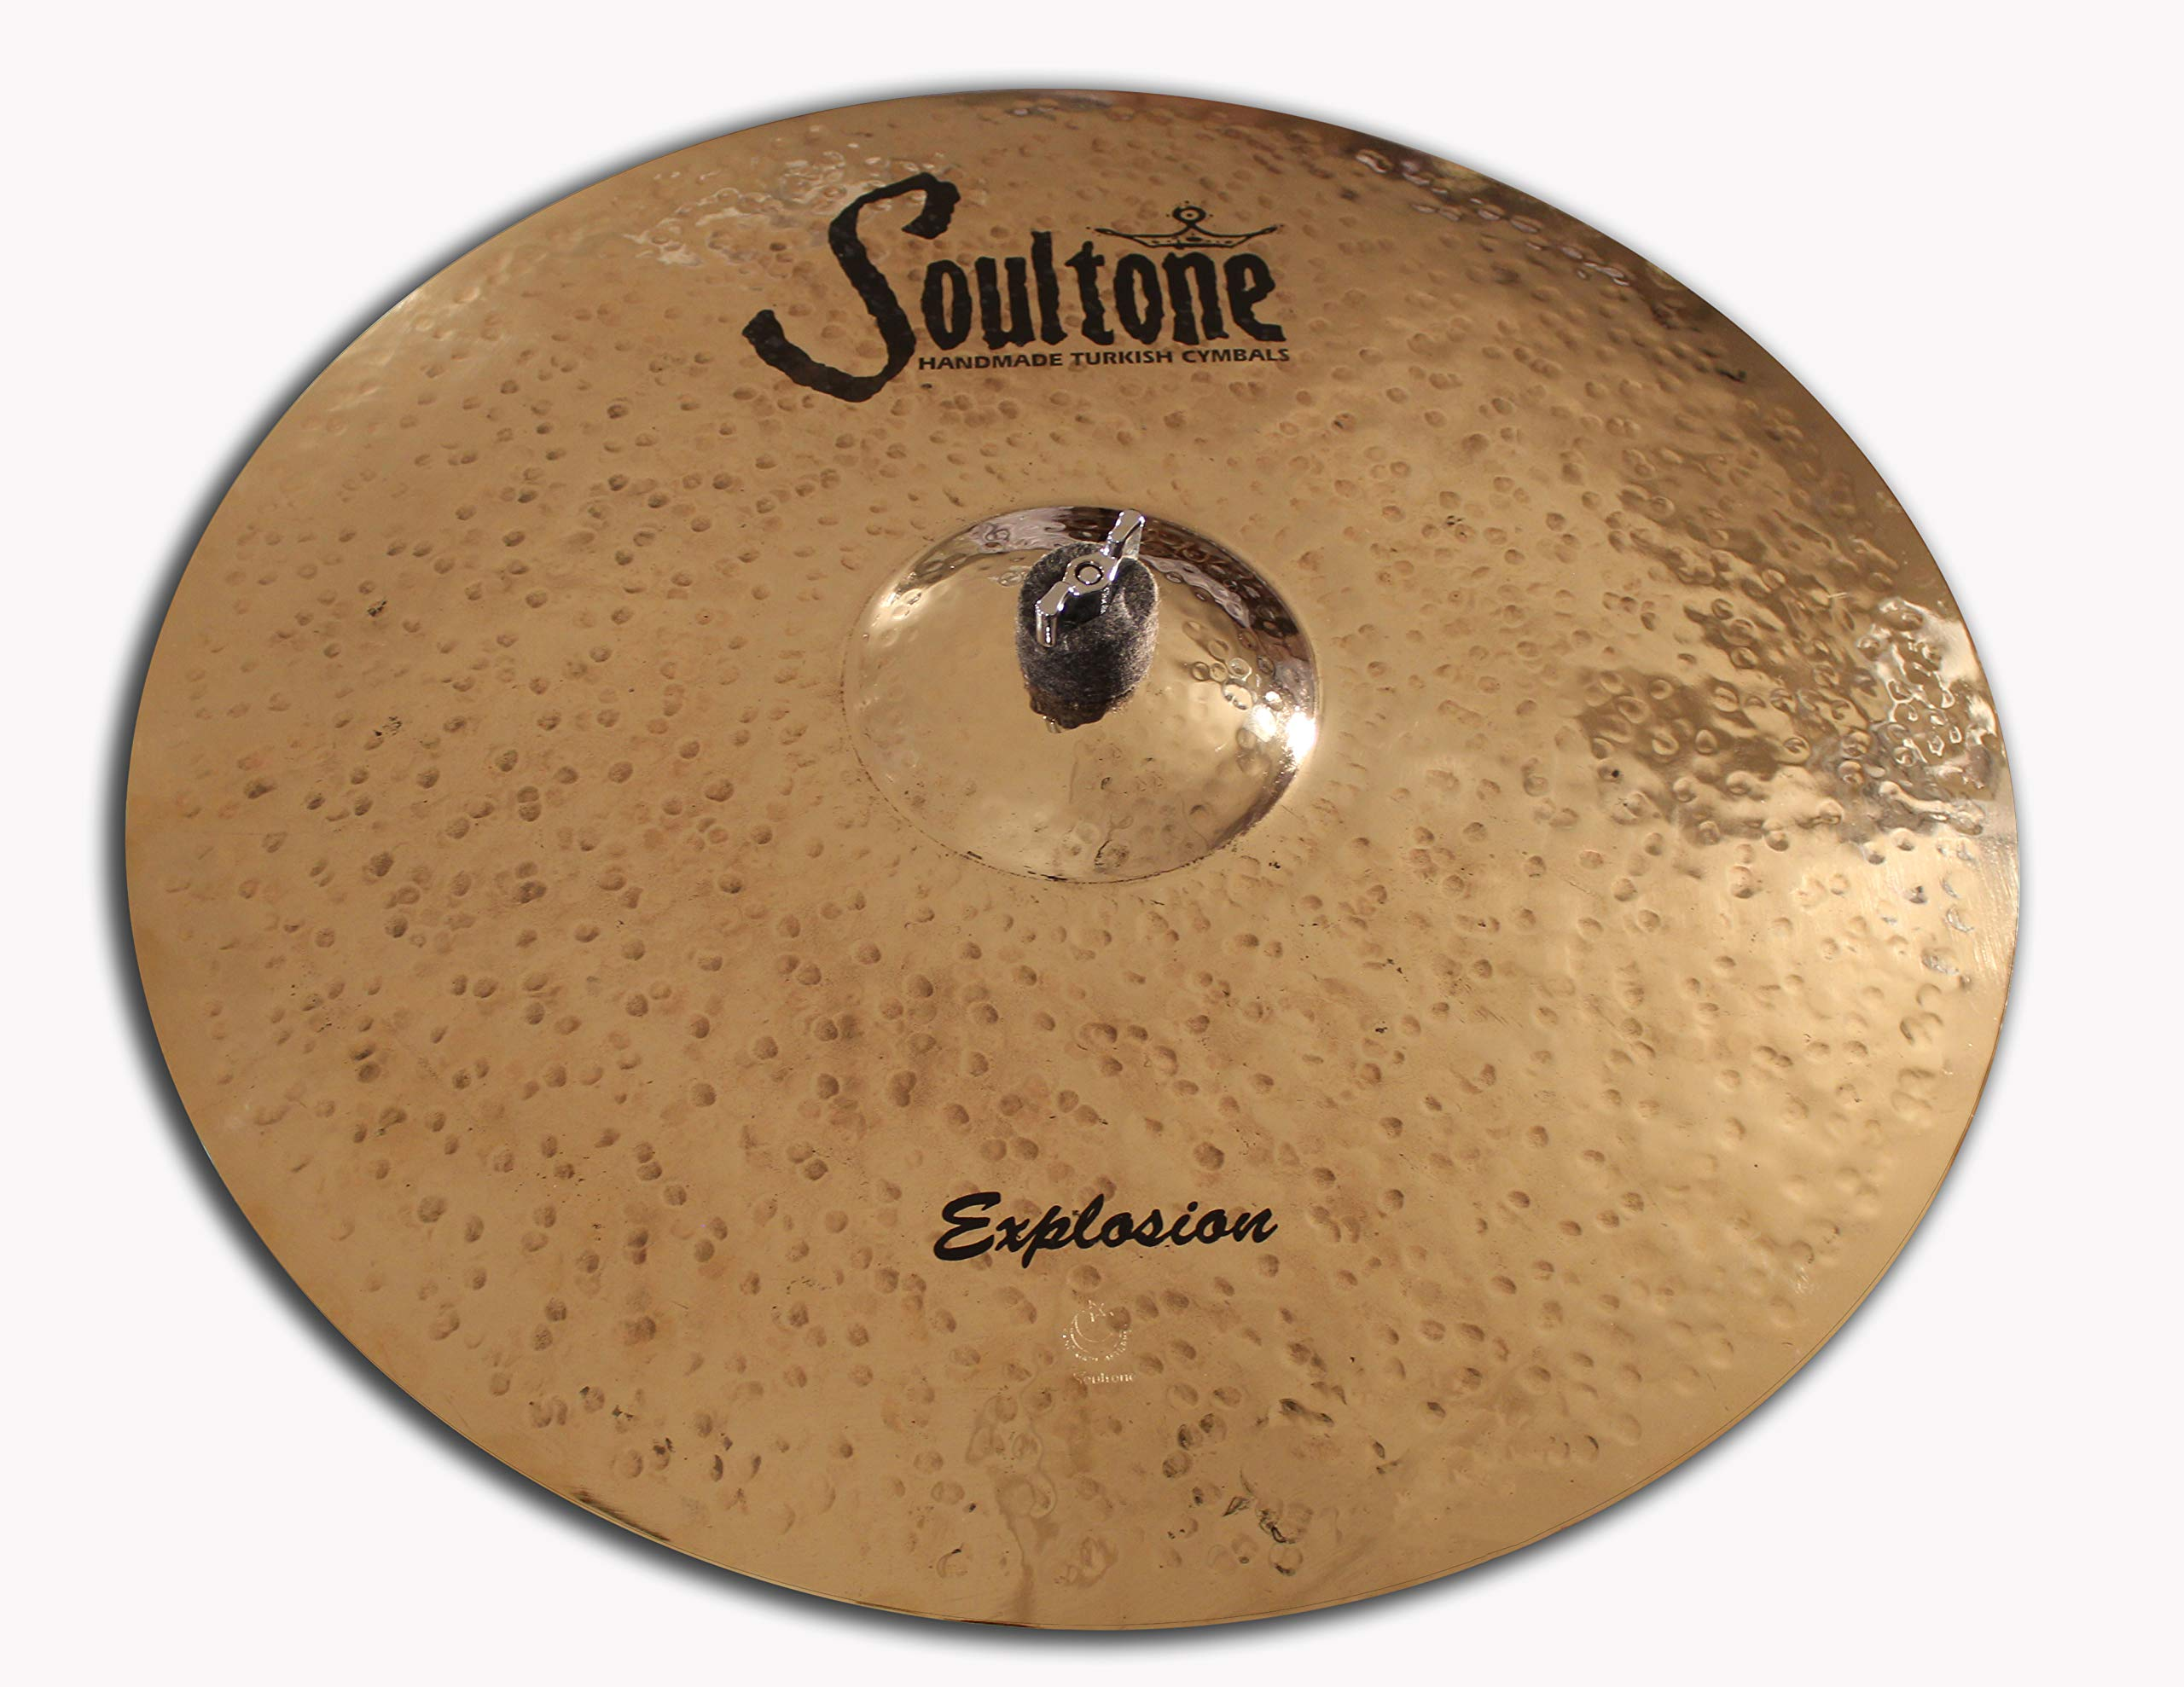 Soultone Cymbals Concert Cymbal 20 EXP-RID20 by Soultone Cymbals